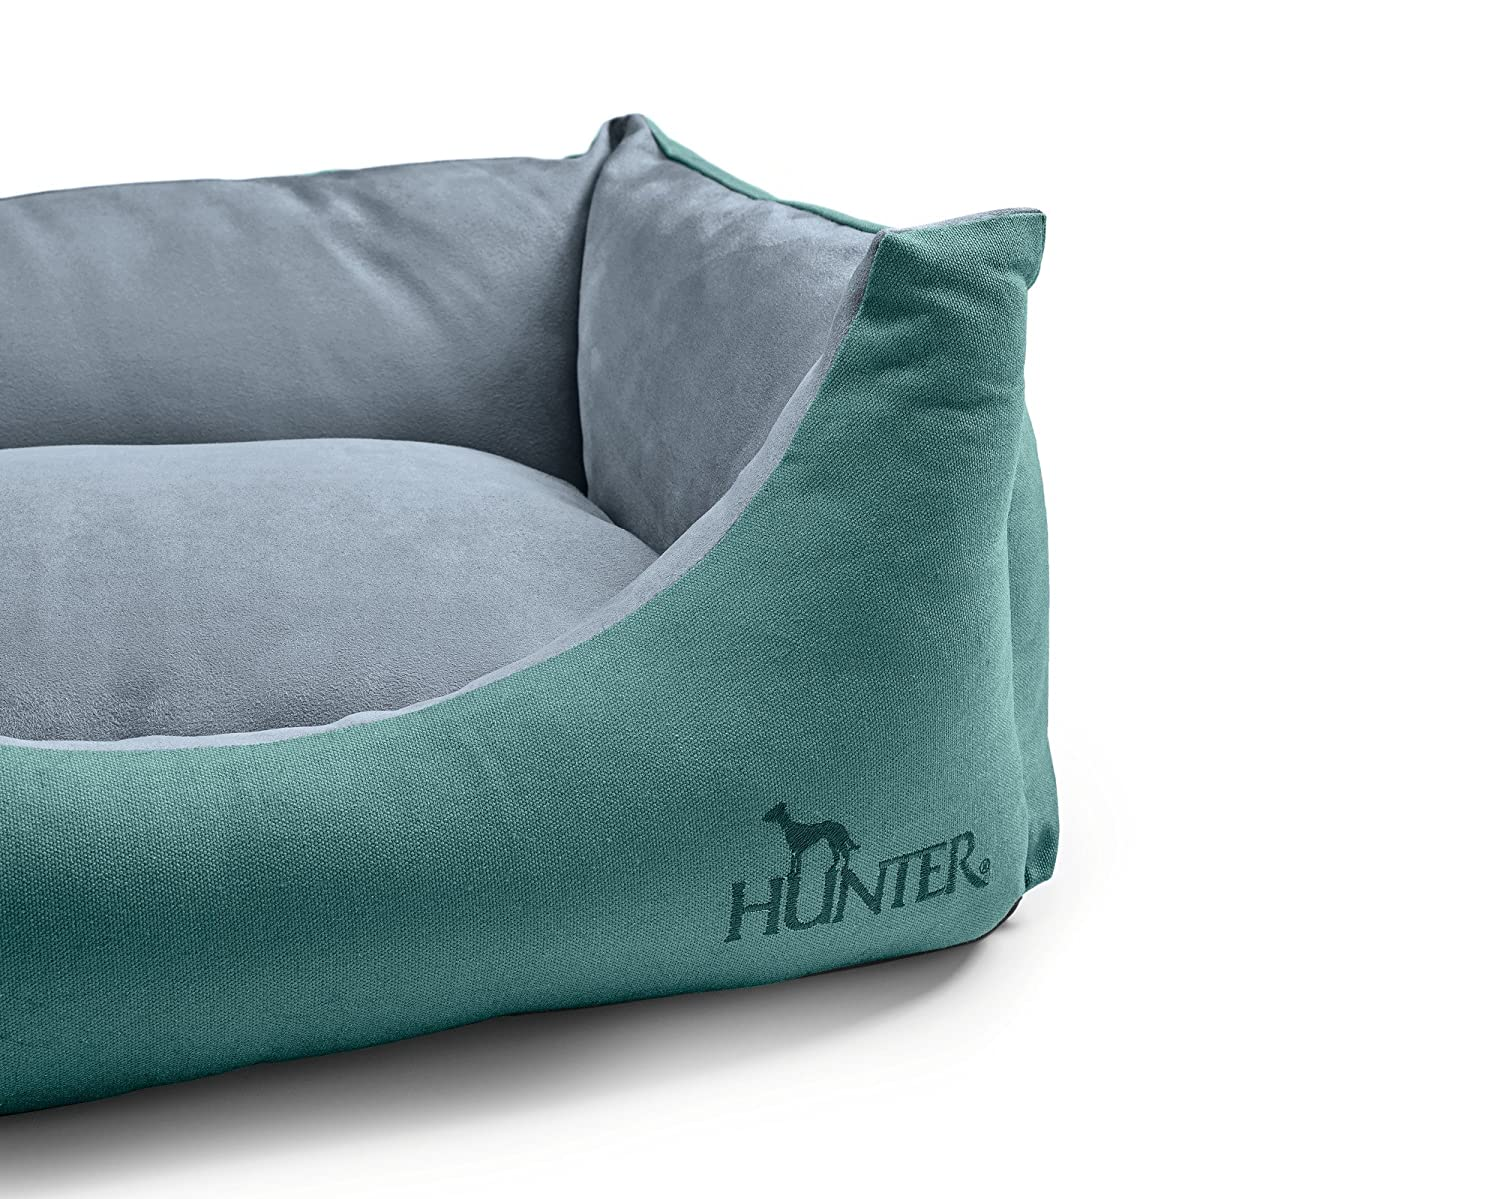 Hunter keitum Perfomance Beds Perros sofá: Amazon.es: Productos para mascotas